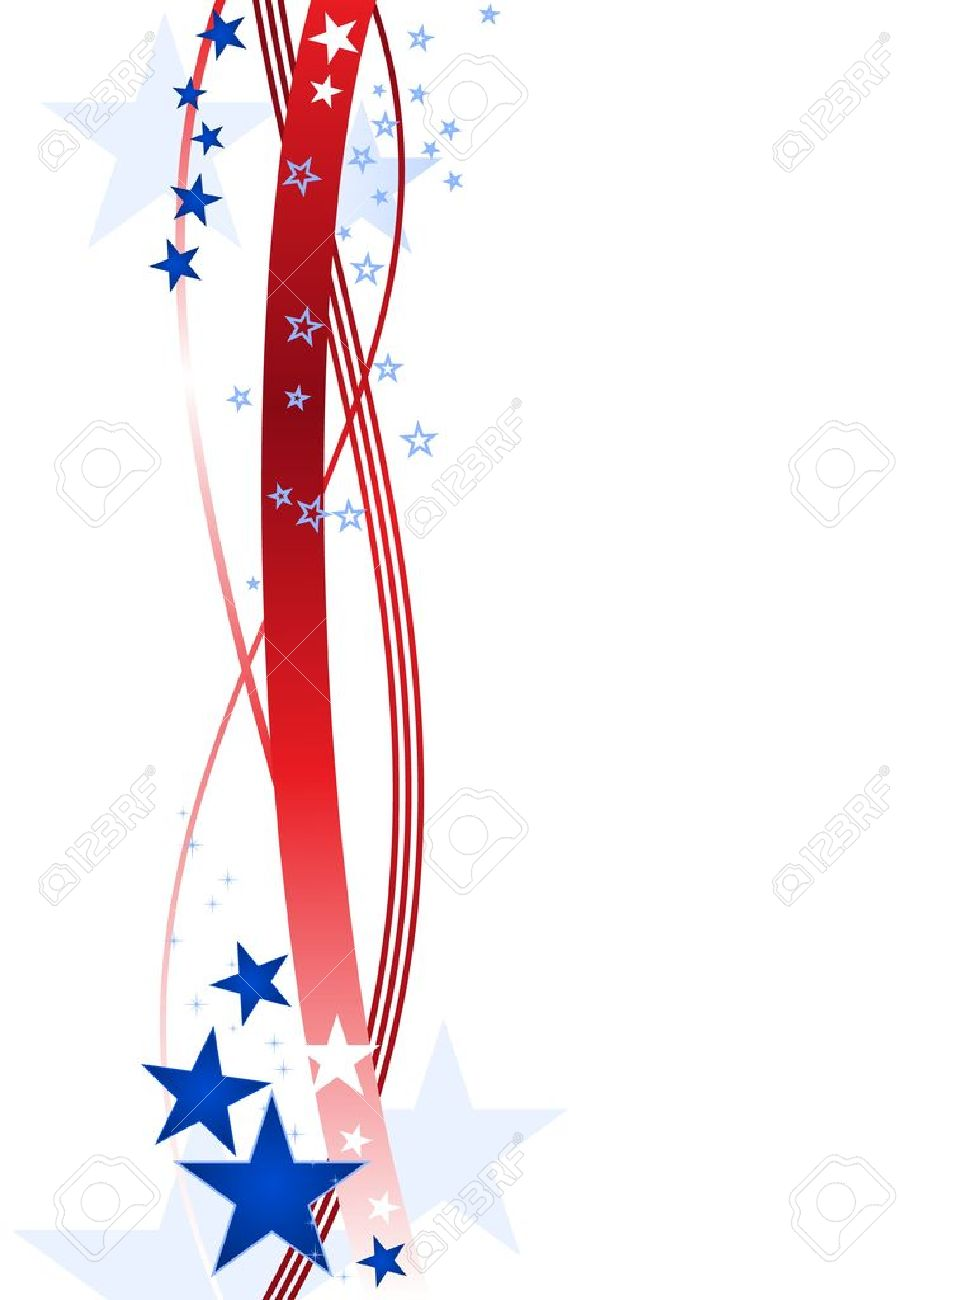 Red wavy lines and blue stars forming a patriotic border on white. - 6989126